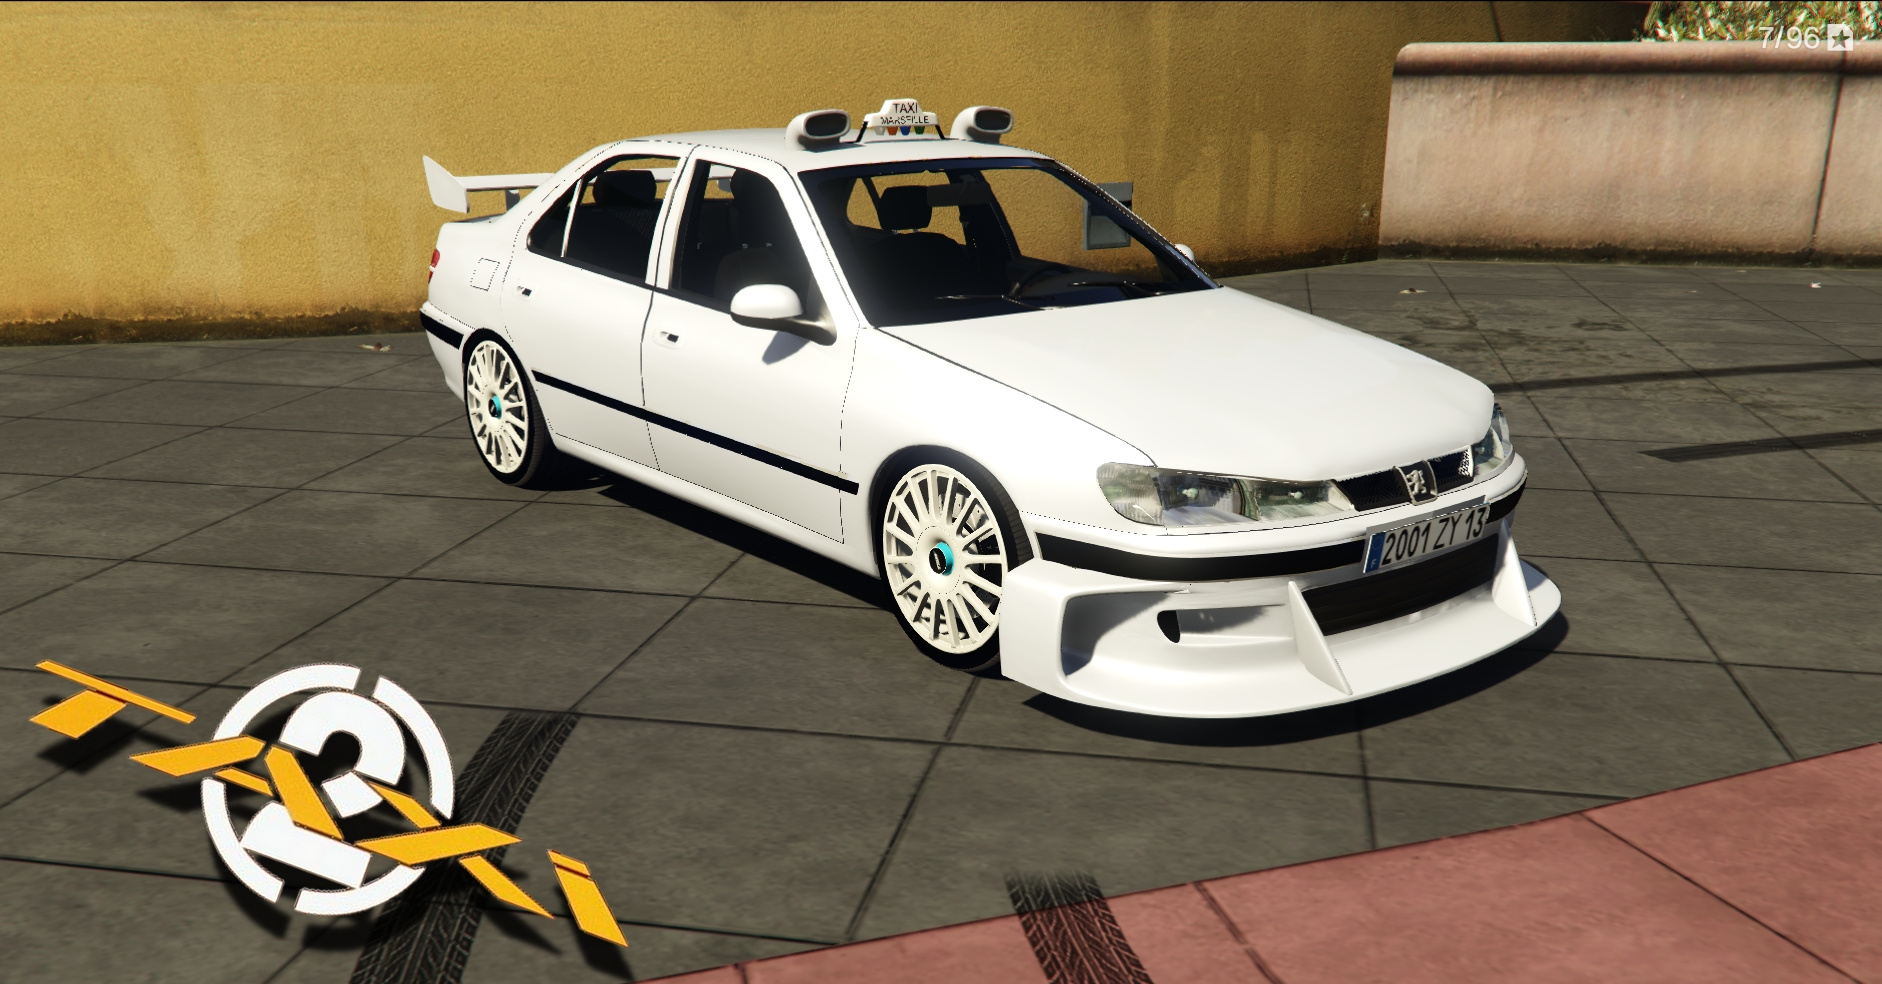 Peugeot 406 Taxi 2 Add On Dials Tuning Gta5 Mods Com Taxi 2